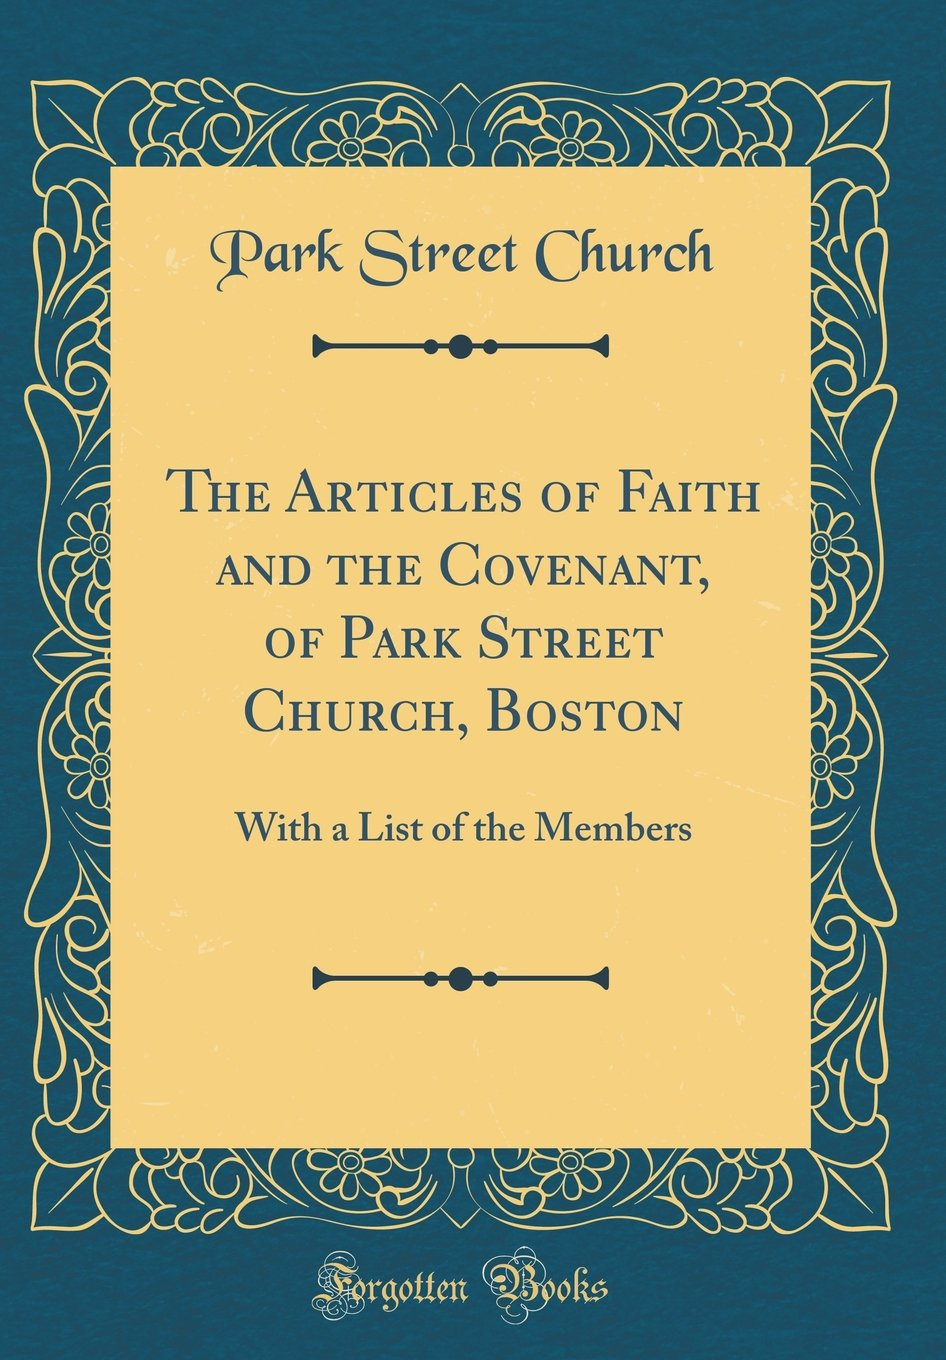 Download The Articles of Faith and the Covenant, of Park Street Church, Boston: With a List of the Members (Classic Reprint) PDF